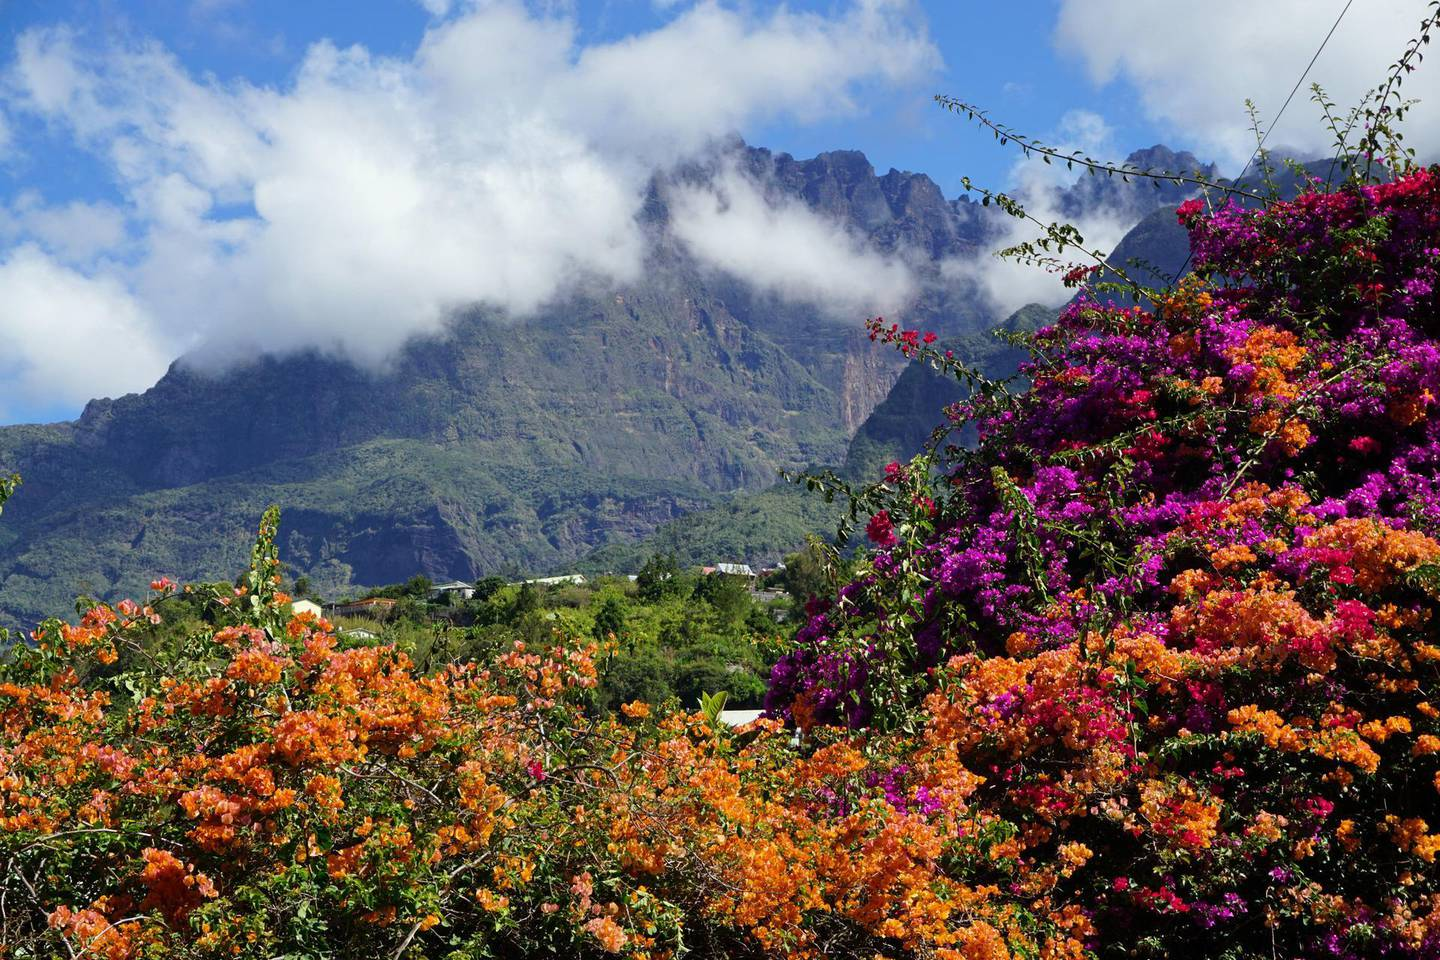 PCW9WE Colorful bougainvillea in full bloom in the tropical mountains of La Reunion, France on a clear sunny day with puffy clouds hanging on the peaks